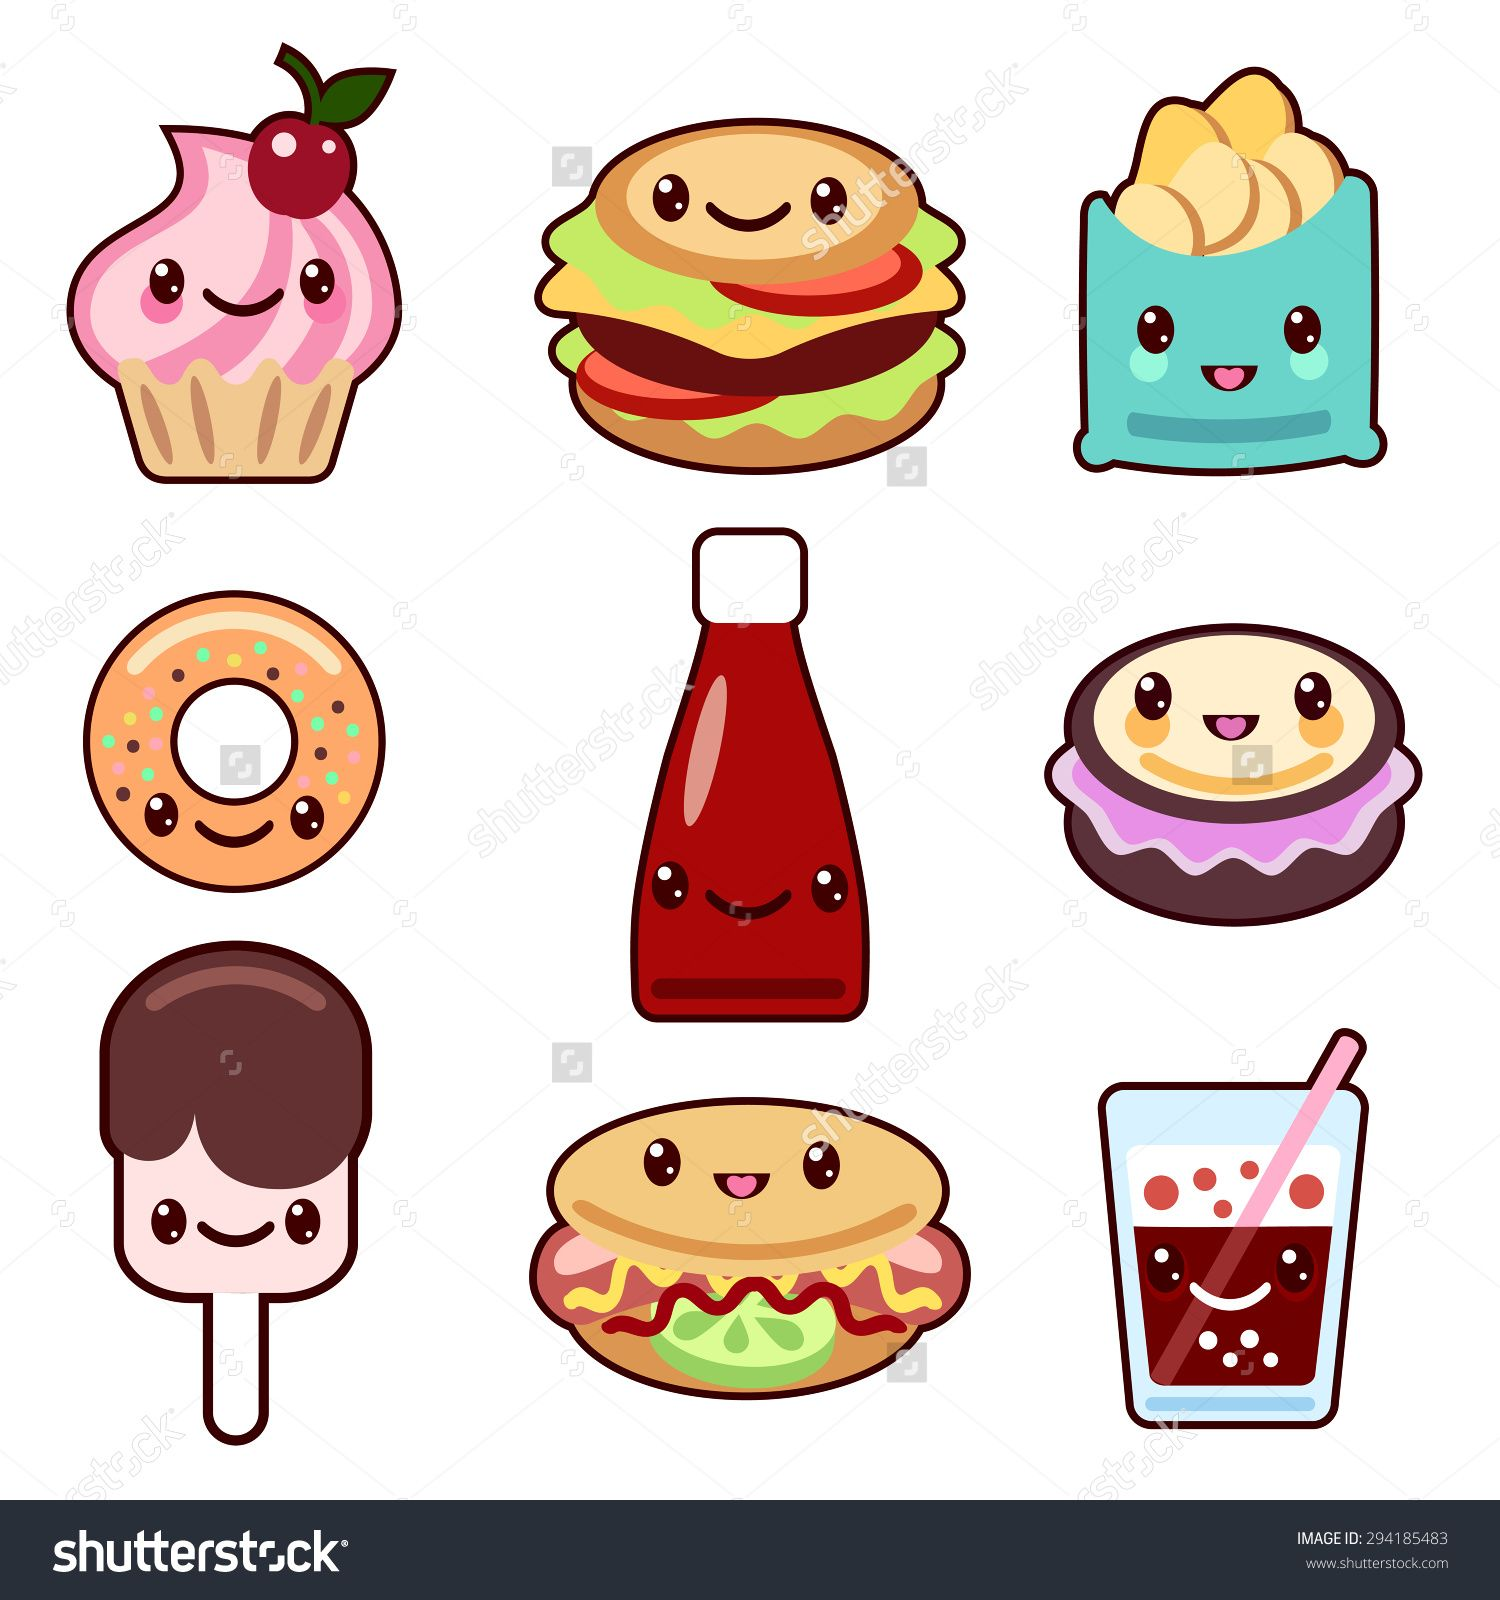 Related image Food Clipart Pinterest